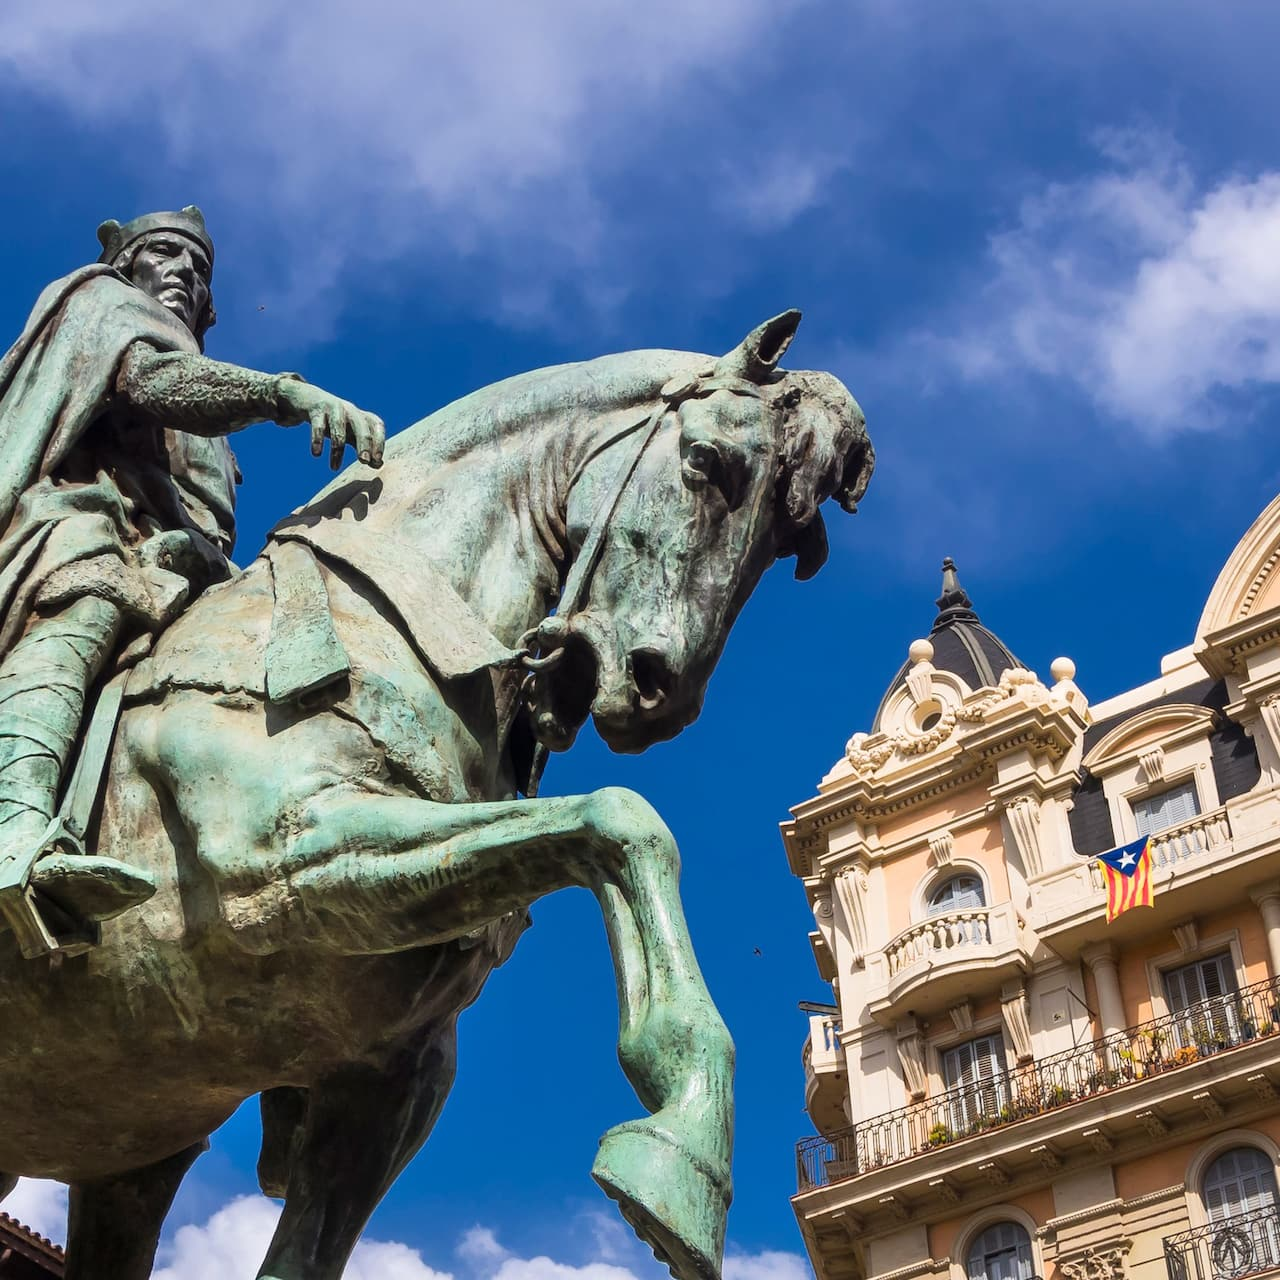 Statue of a man on a horse with classic buildings surrounding it